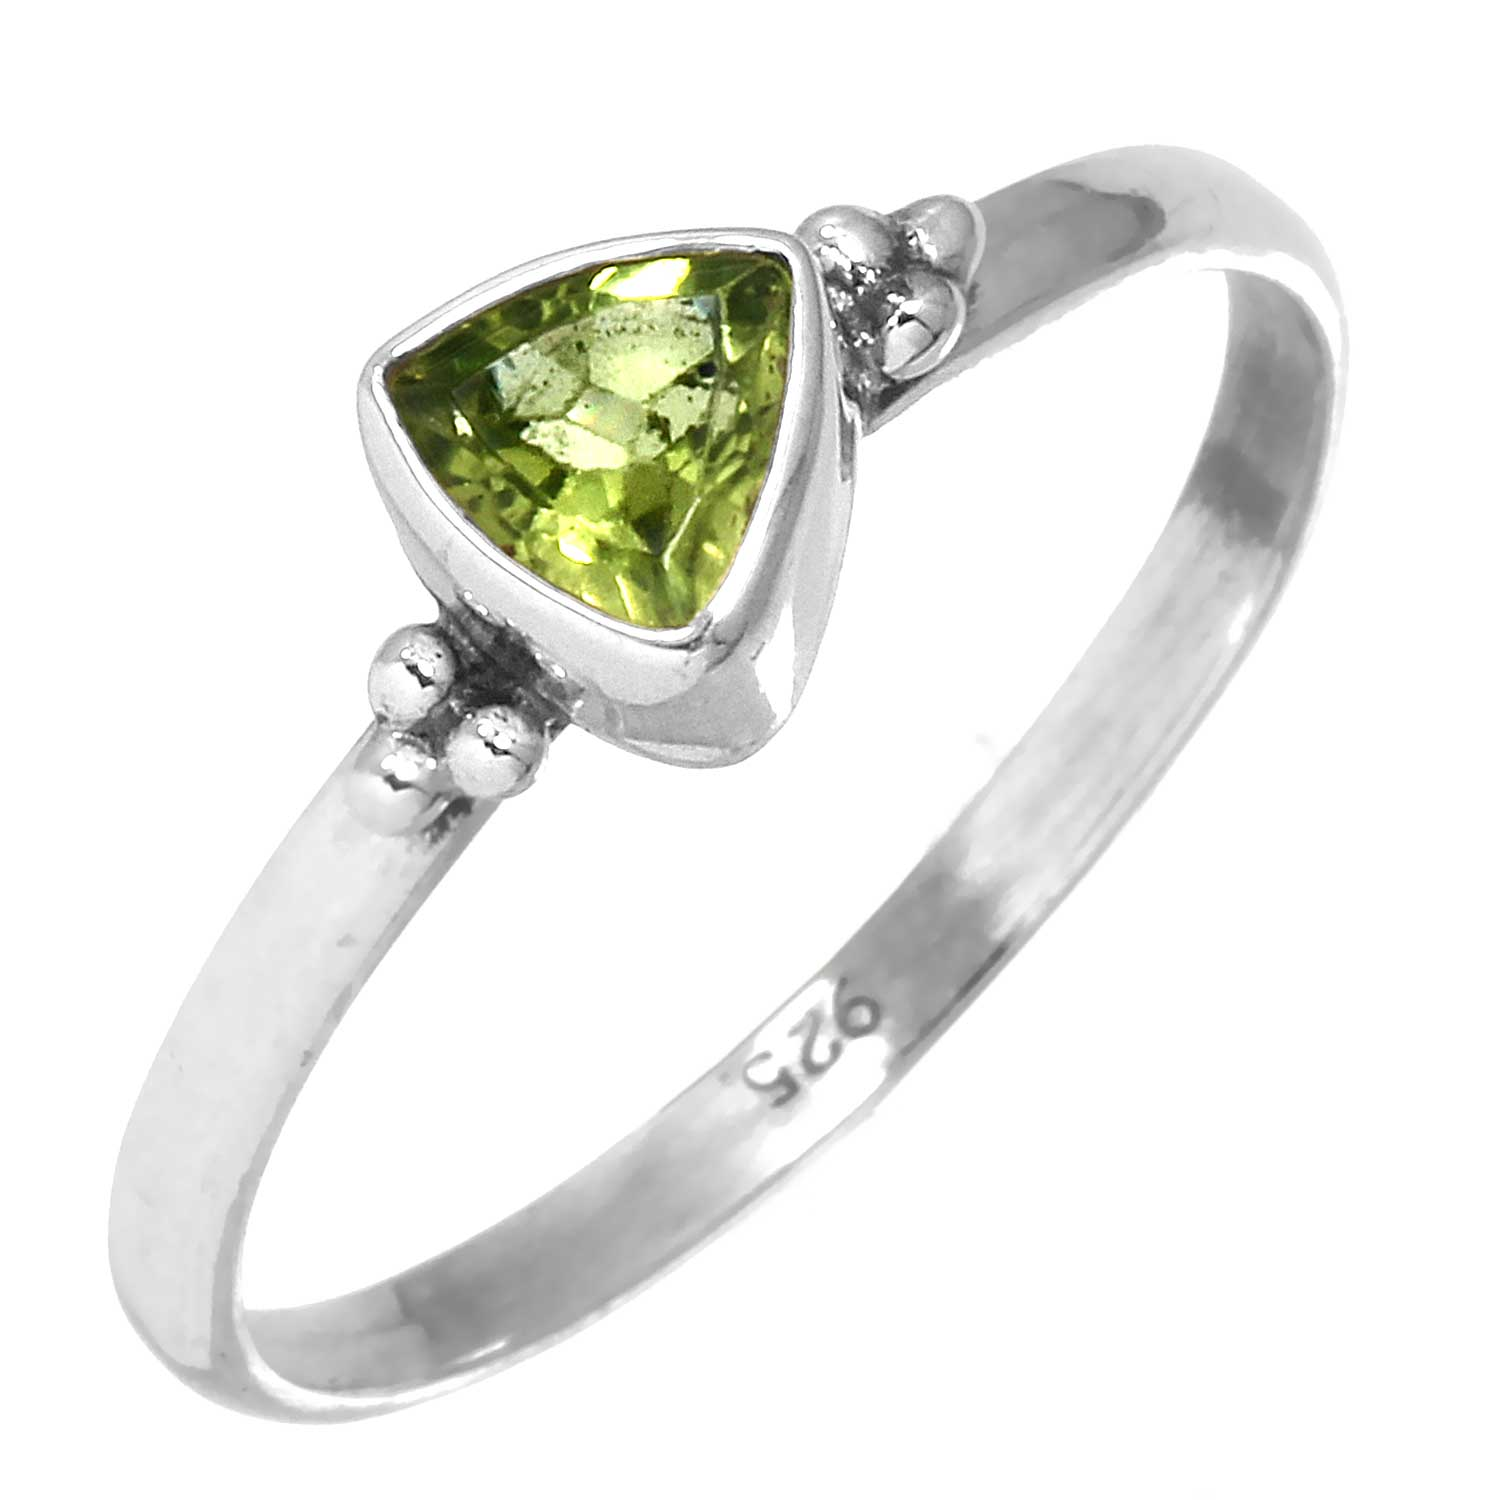 Sterling silver Peridot (1.5ctw) Ring ID=rg801prf